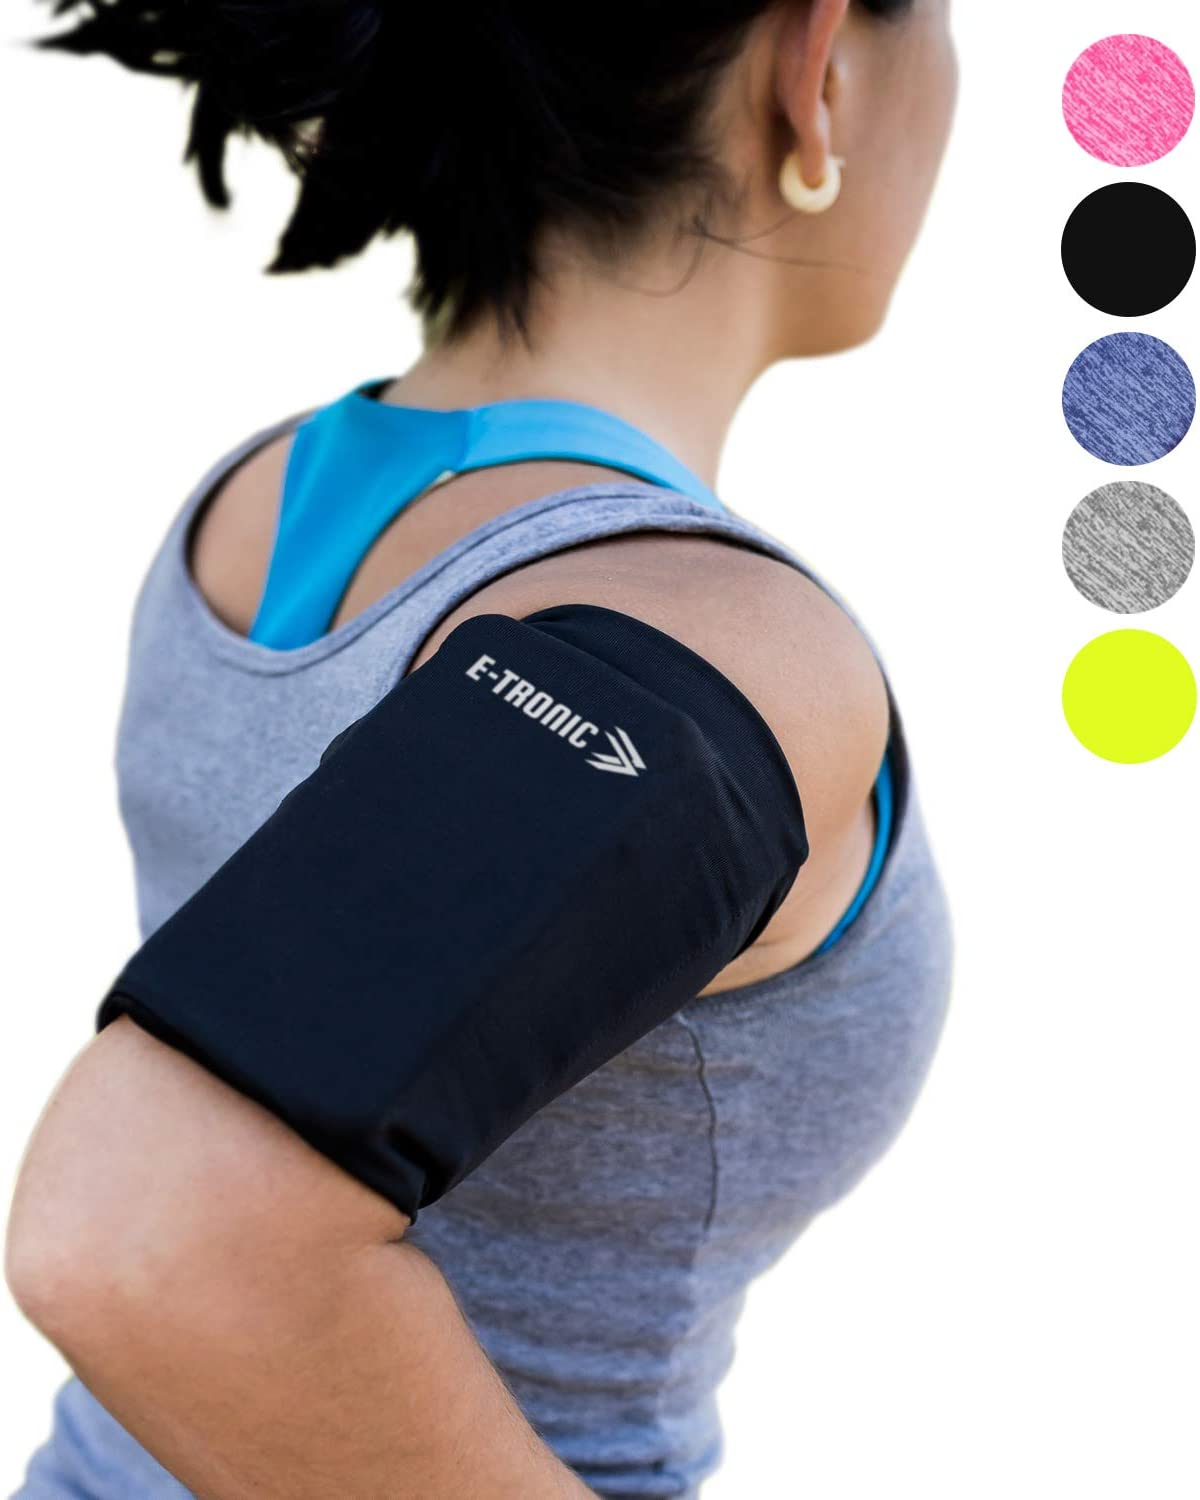 Phone Armband Sleeve: Best Running Sports Arm Band Strap Holder Pouch Case for Exercise Workout Fits iPhone X XS 6S 7 8 Plus iPod Android Samsung Galaxy S6 S7 S8 Note 4 5 6 7 Edge LG HTC Pixel Large